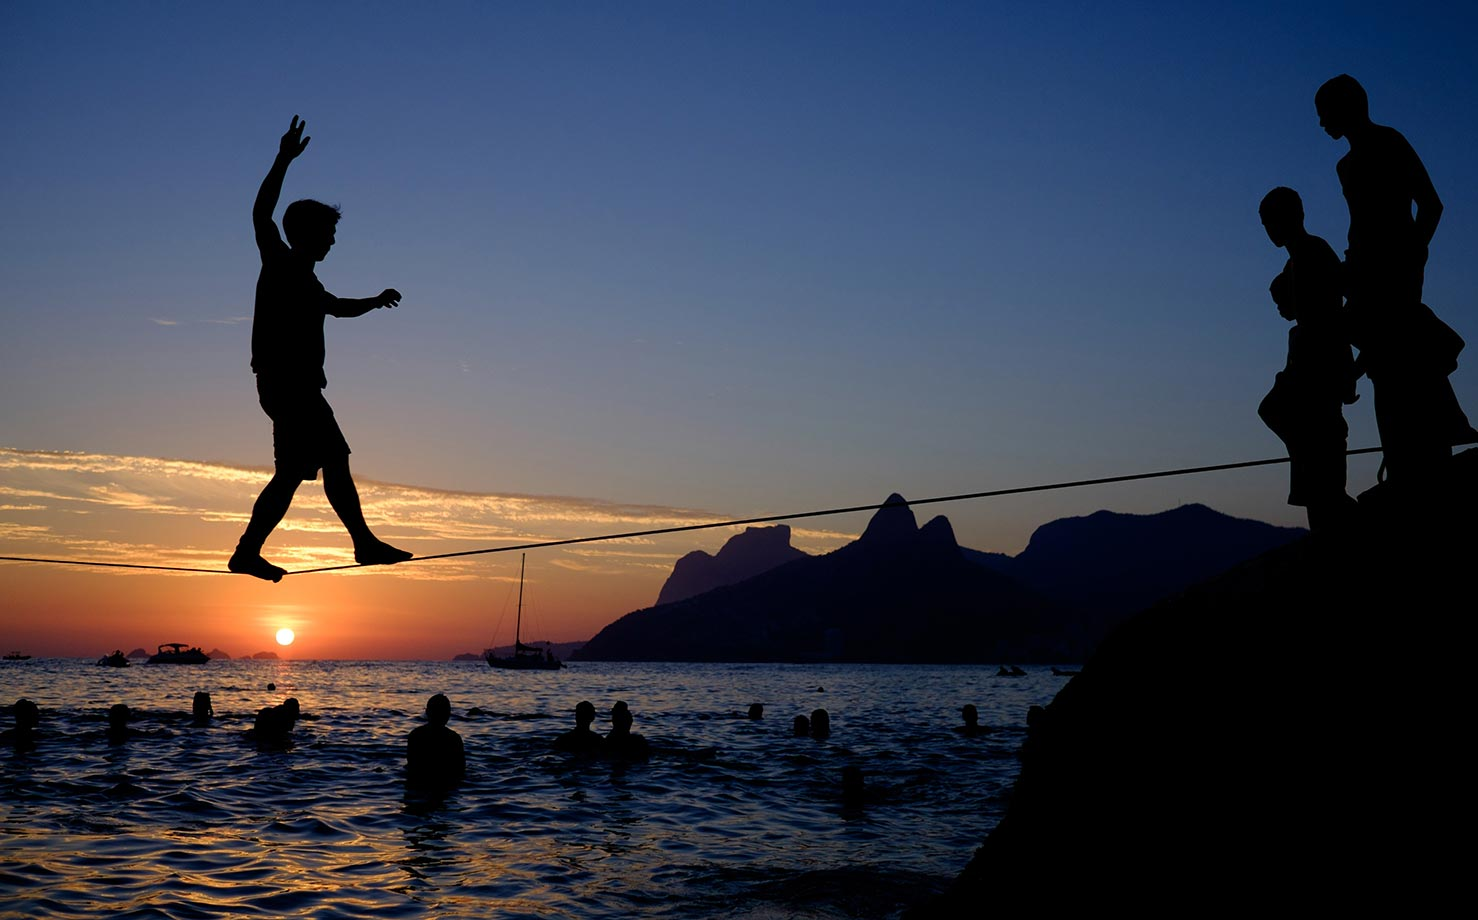 A man crosses on a slickline over the water at Apoador beach in Rio de Janeiro.